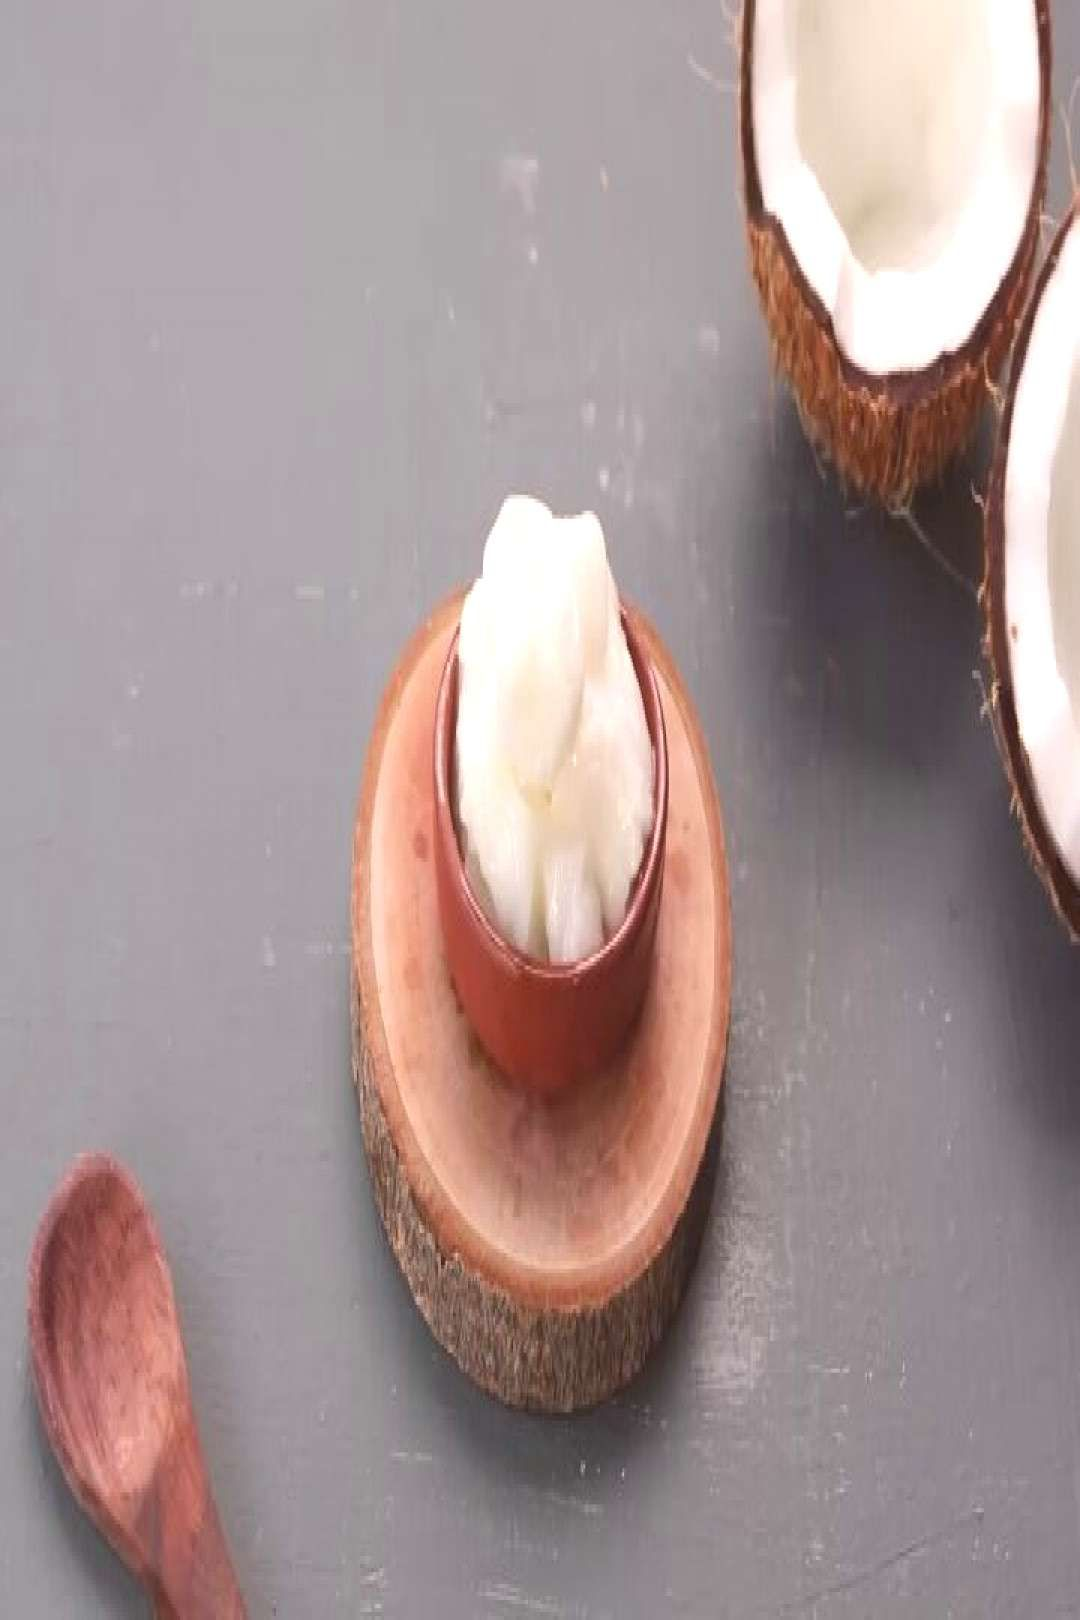 #diybeauty #remedies #coconut #repost #thank #using #very #much #you #10 #Repost THANK YOU VERY MUCH * * * * * * 10 REMEDIES USING COCONUTYou can find Diy beauty and more on our website.#Repost THANK YOU VERY MUCH * * * * * * 10 REMEDIES USIN...